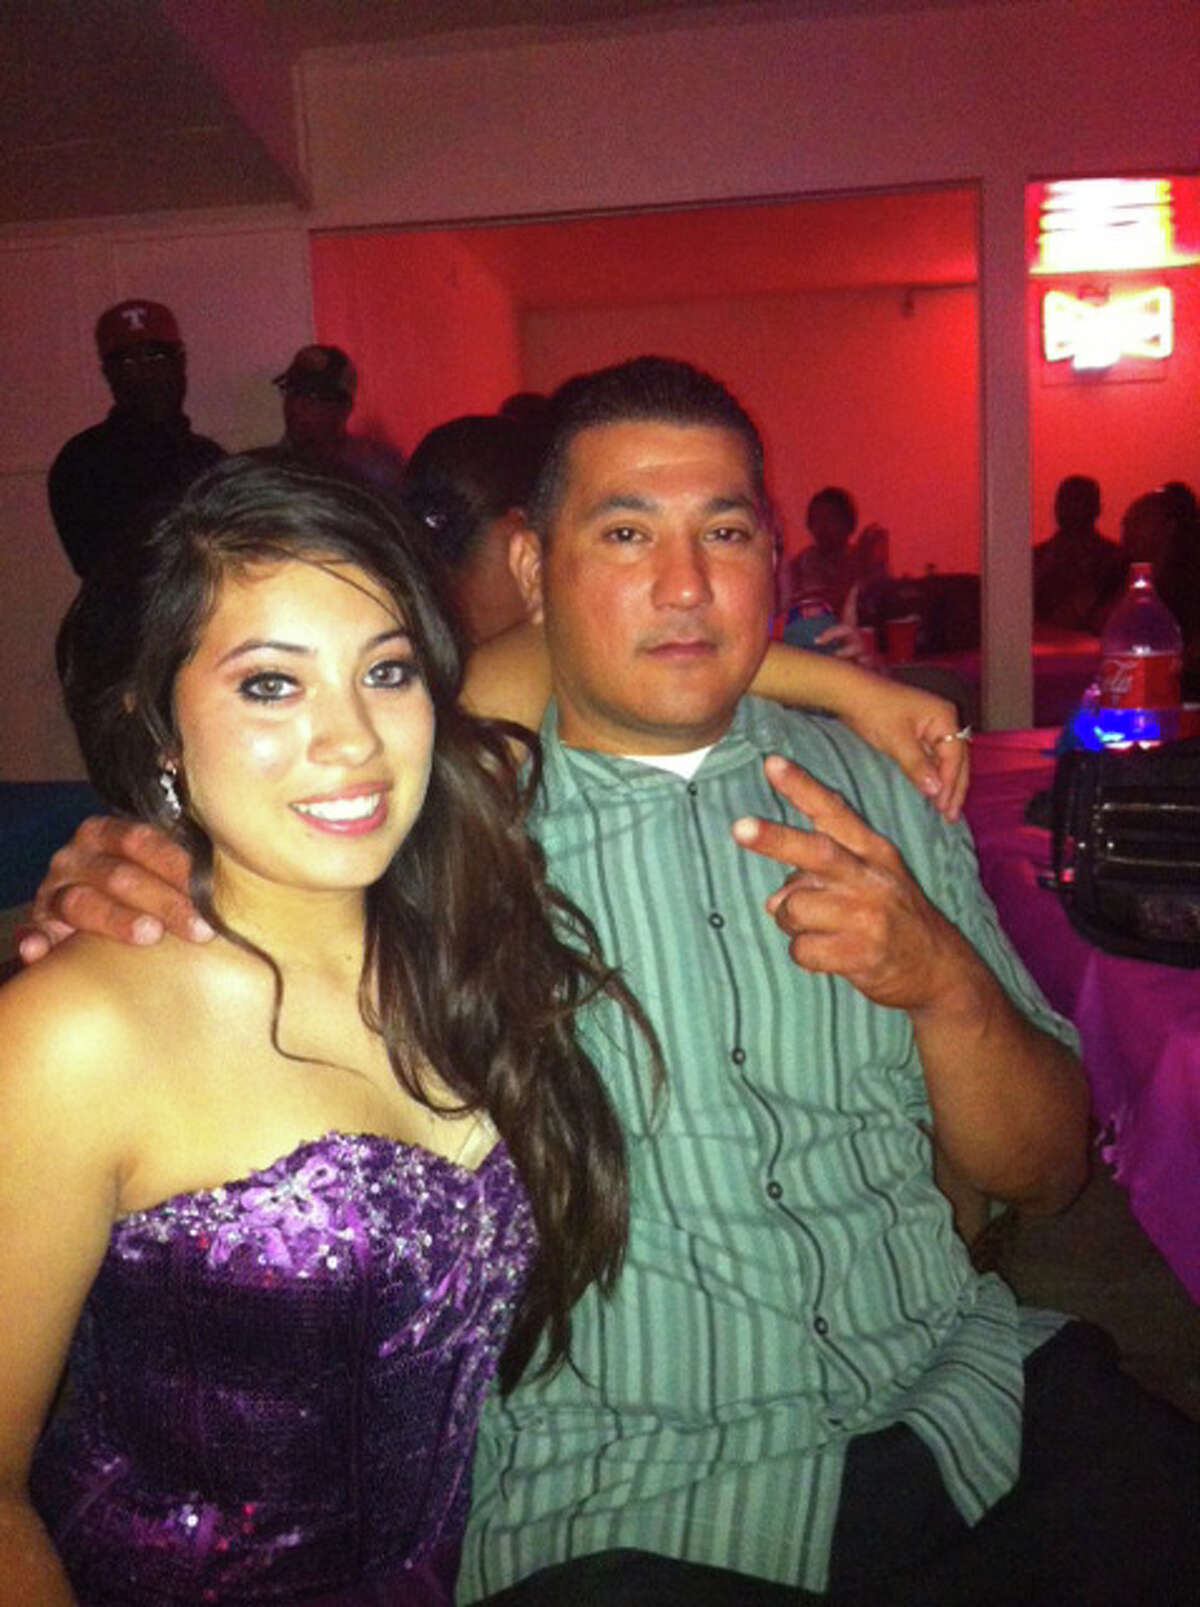 Gabriella Lerma, left, and her father, Paul Lerma.